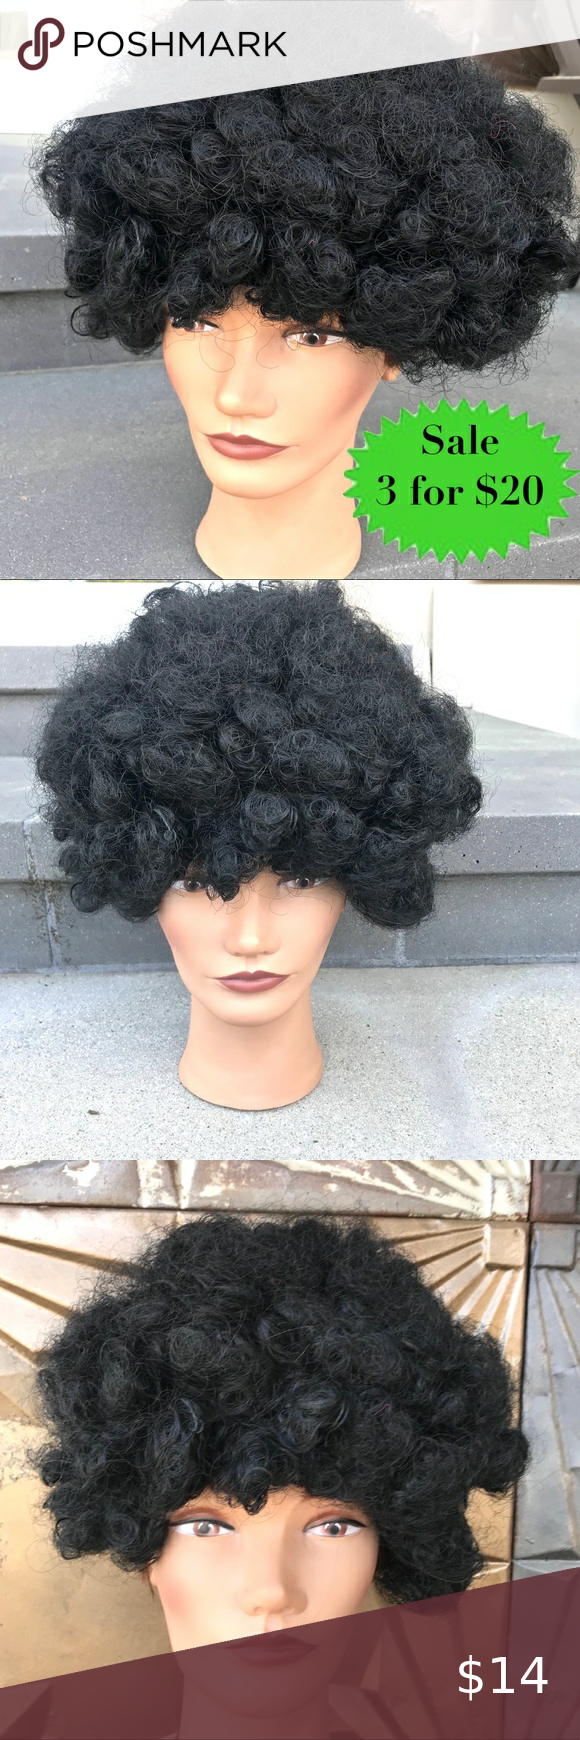 BLACK WIG Afro curly hair costume Halloween Party City